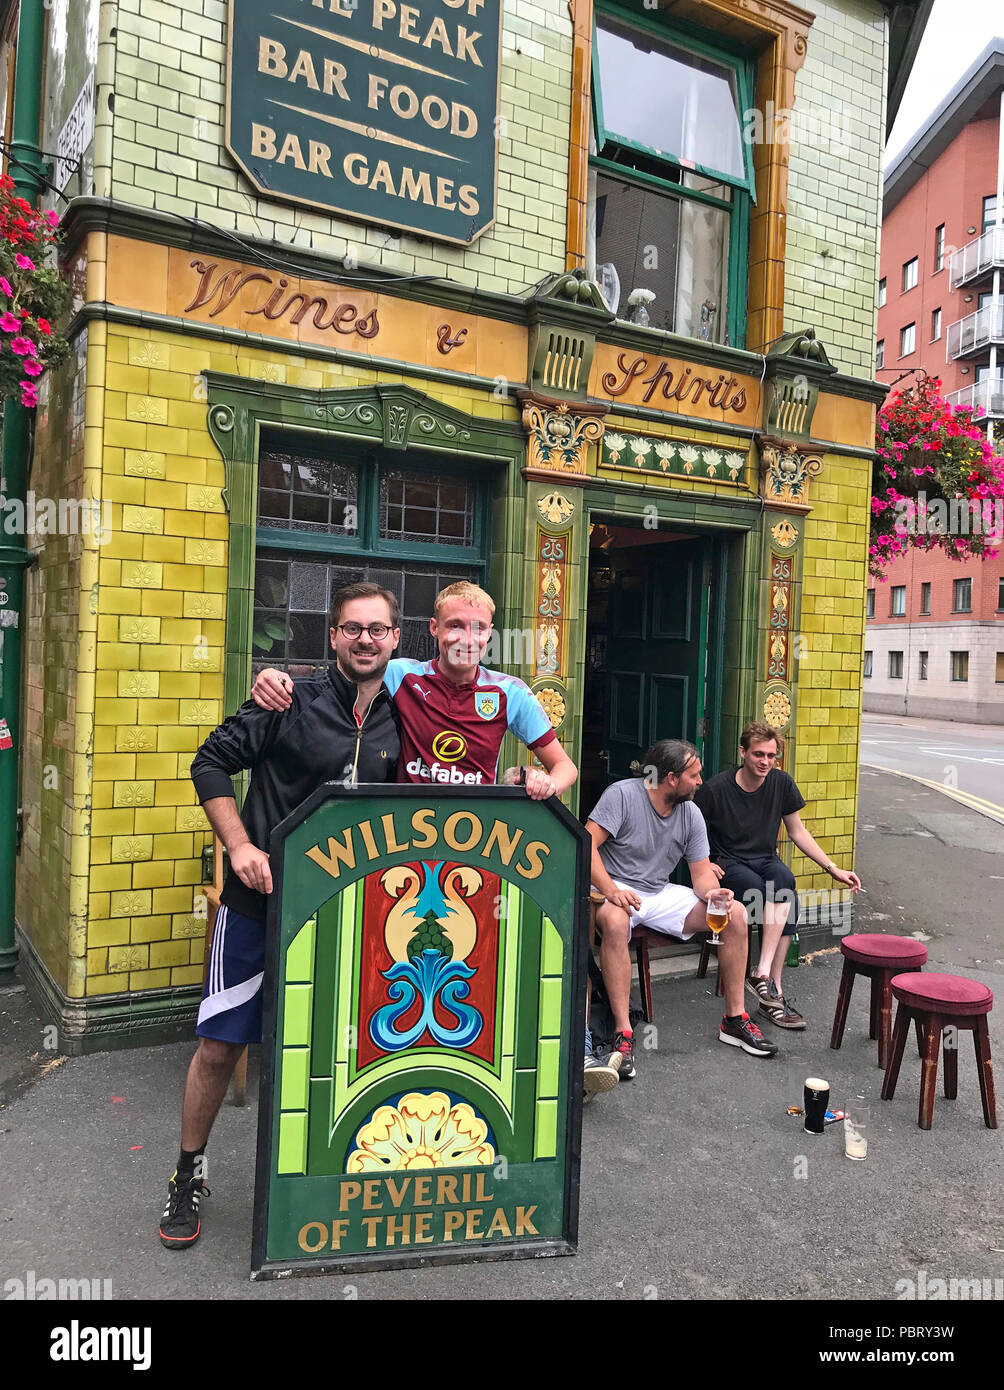 GoTonySmith,@HotpixUK,M1,pub,CAMRA,arrives,at,sign,painting,painted,Great Bridgewater Street,UK,M1 5JQ,green,tiles,tiled,green tiled pub,tourist attraction,Manchester England,Sir Walter Scott,stagecoach,stage coach,mailcoach,mail coach,Luton,Peak District,Wines,Spirits,Wines & Spirits,Wines and Spirits,summer,bar food,pub games,Wilsons,brewery,outside,exterior,artist,painter